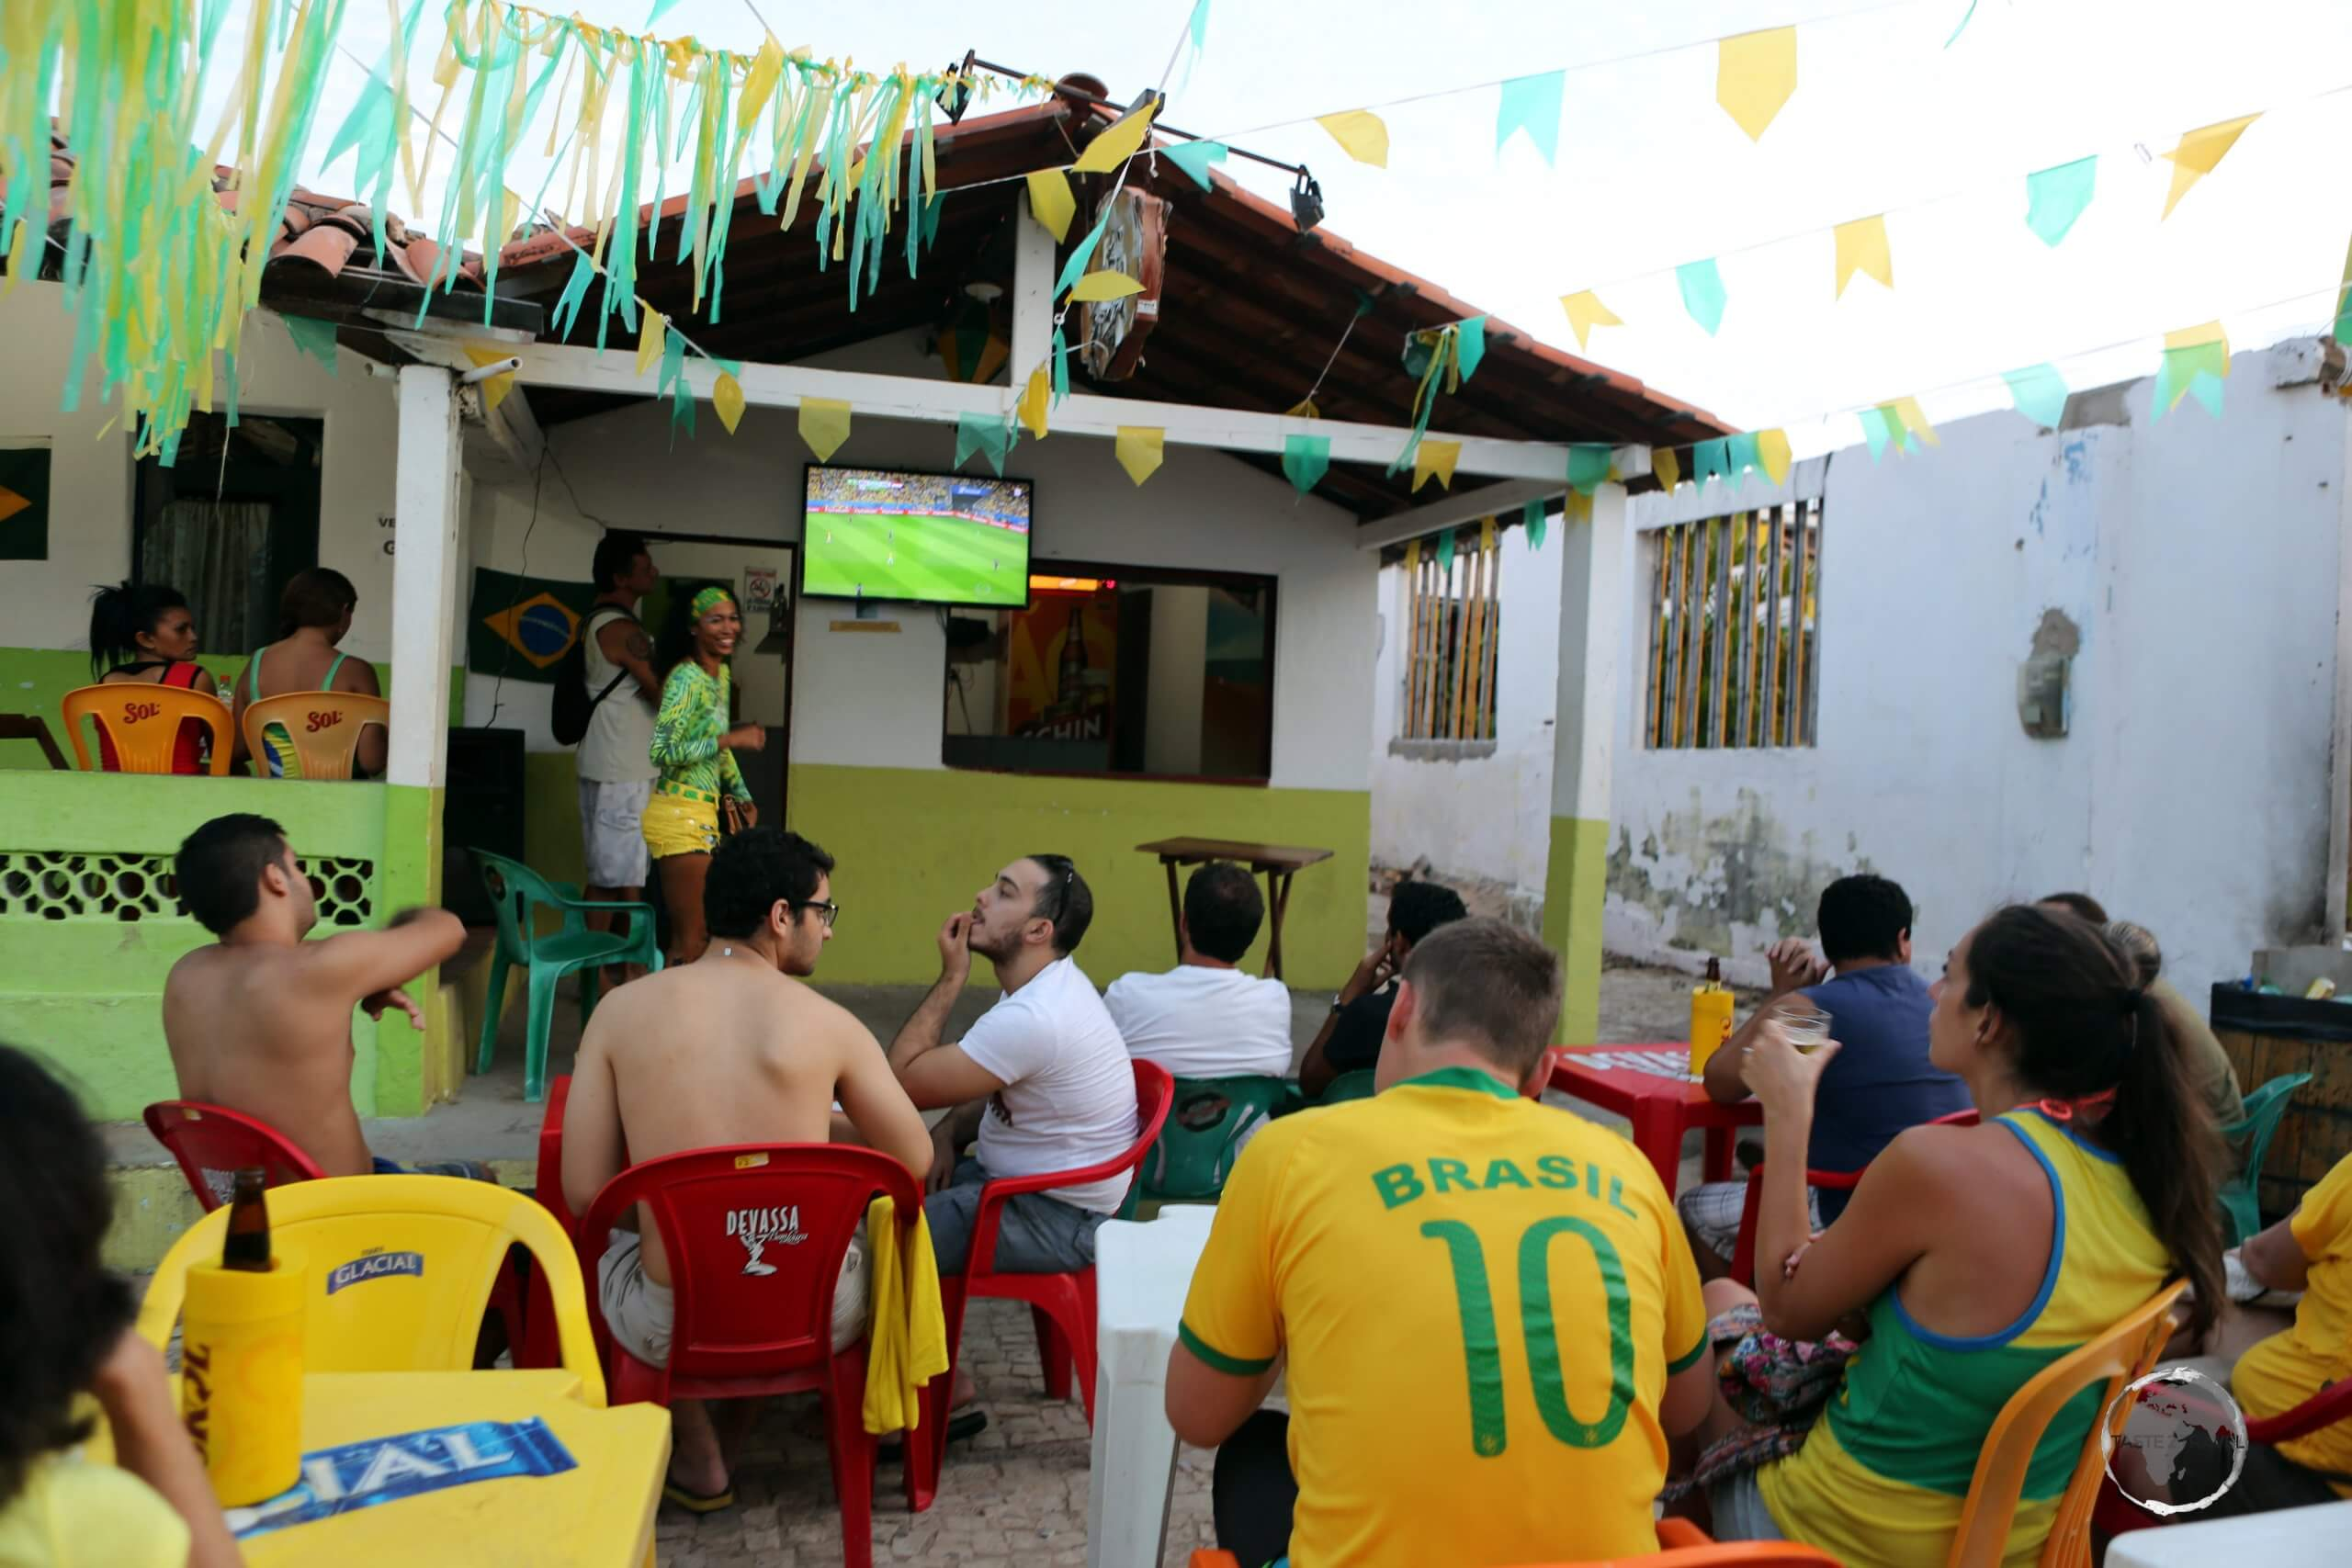 Joining the locals in Canoa Quebrada to watch Brazil play one of their 2016 World Cup games, which was playing in Brazil.